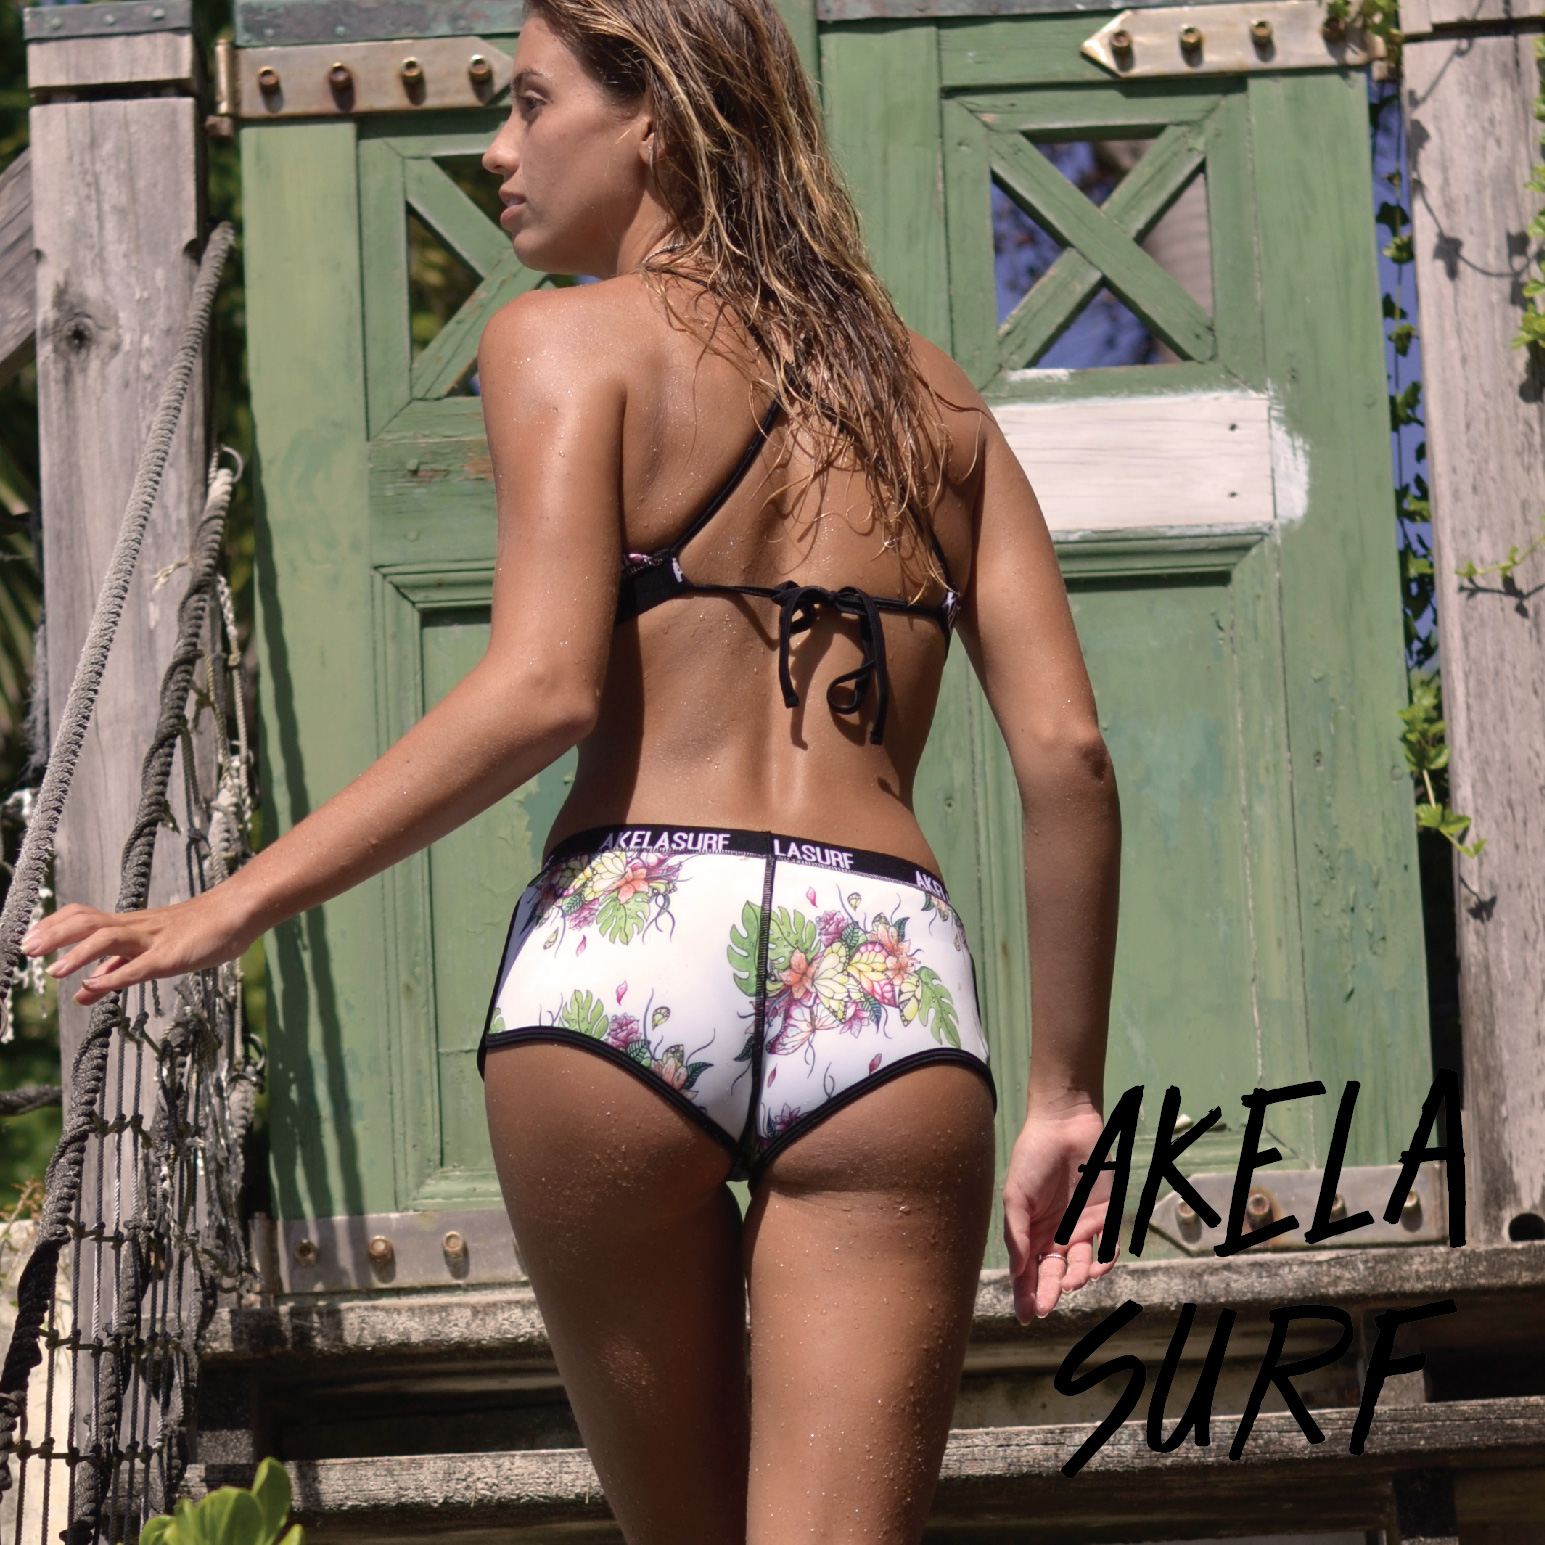 Akela Surf  is an exclusive Canadian Surf Brand. They combine their love and experiences with design, lifestyle, ethical mindset and gliding on water to pour it all into the brand.